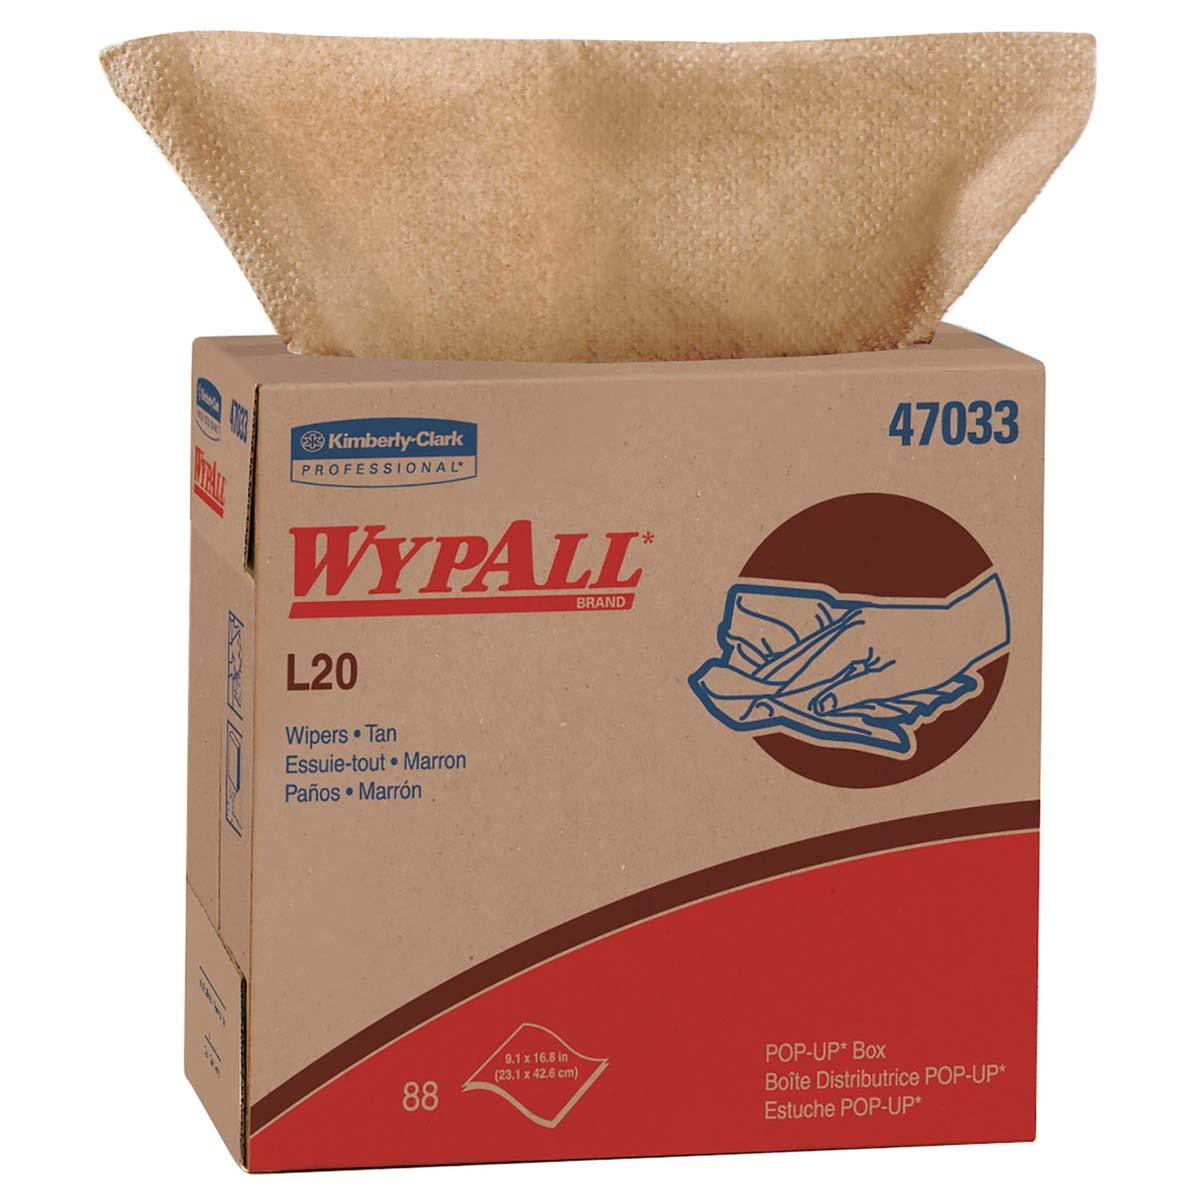 WypAll L20 Limited Use Wipers (47033), Pop-Up Box, Natural Color, 2-Ply, 10 Boxes / Case, 88 Sheets / Box